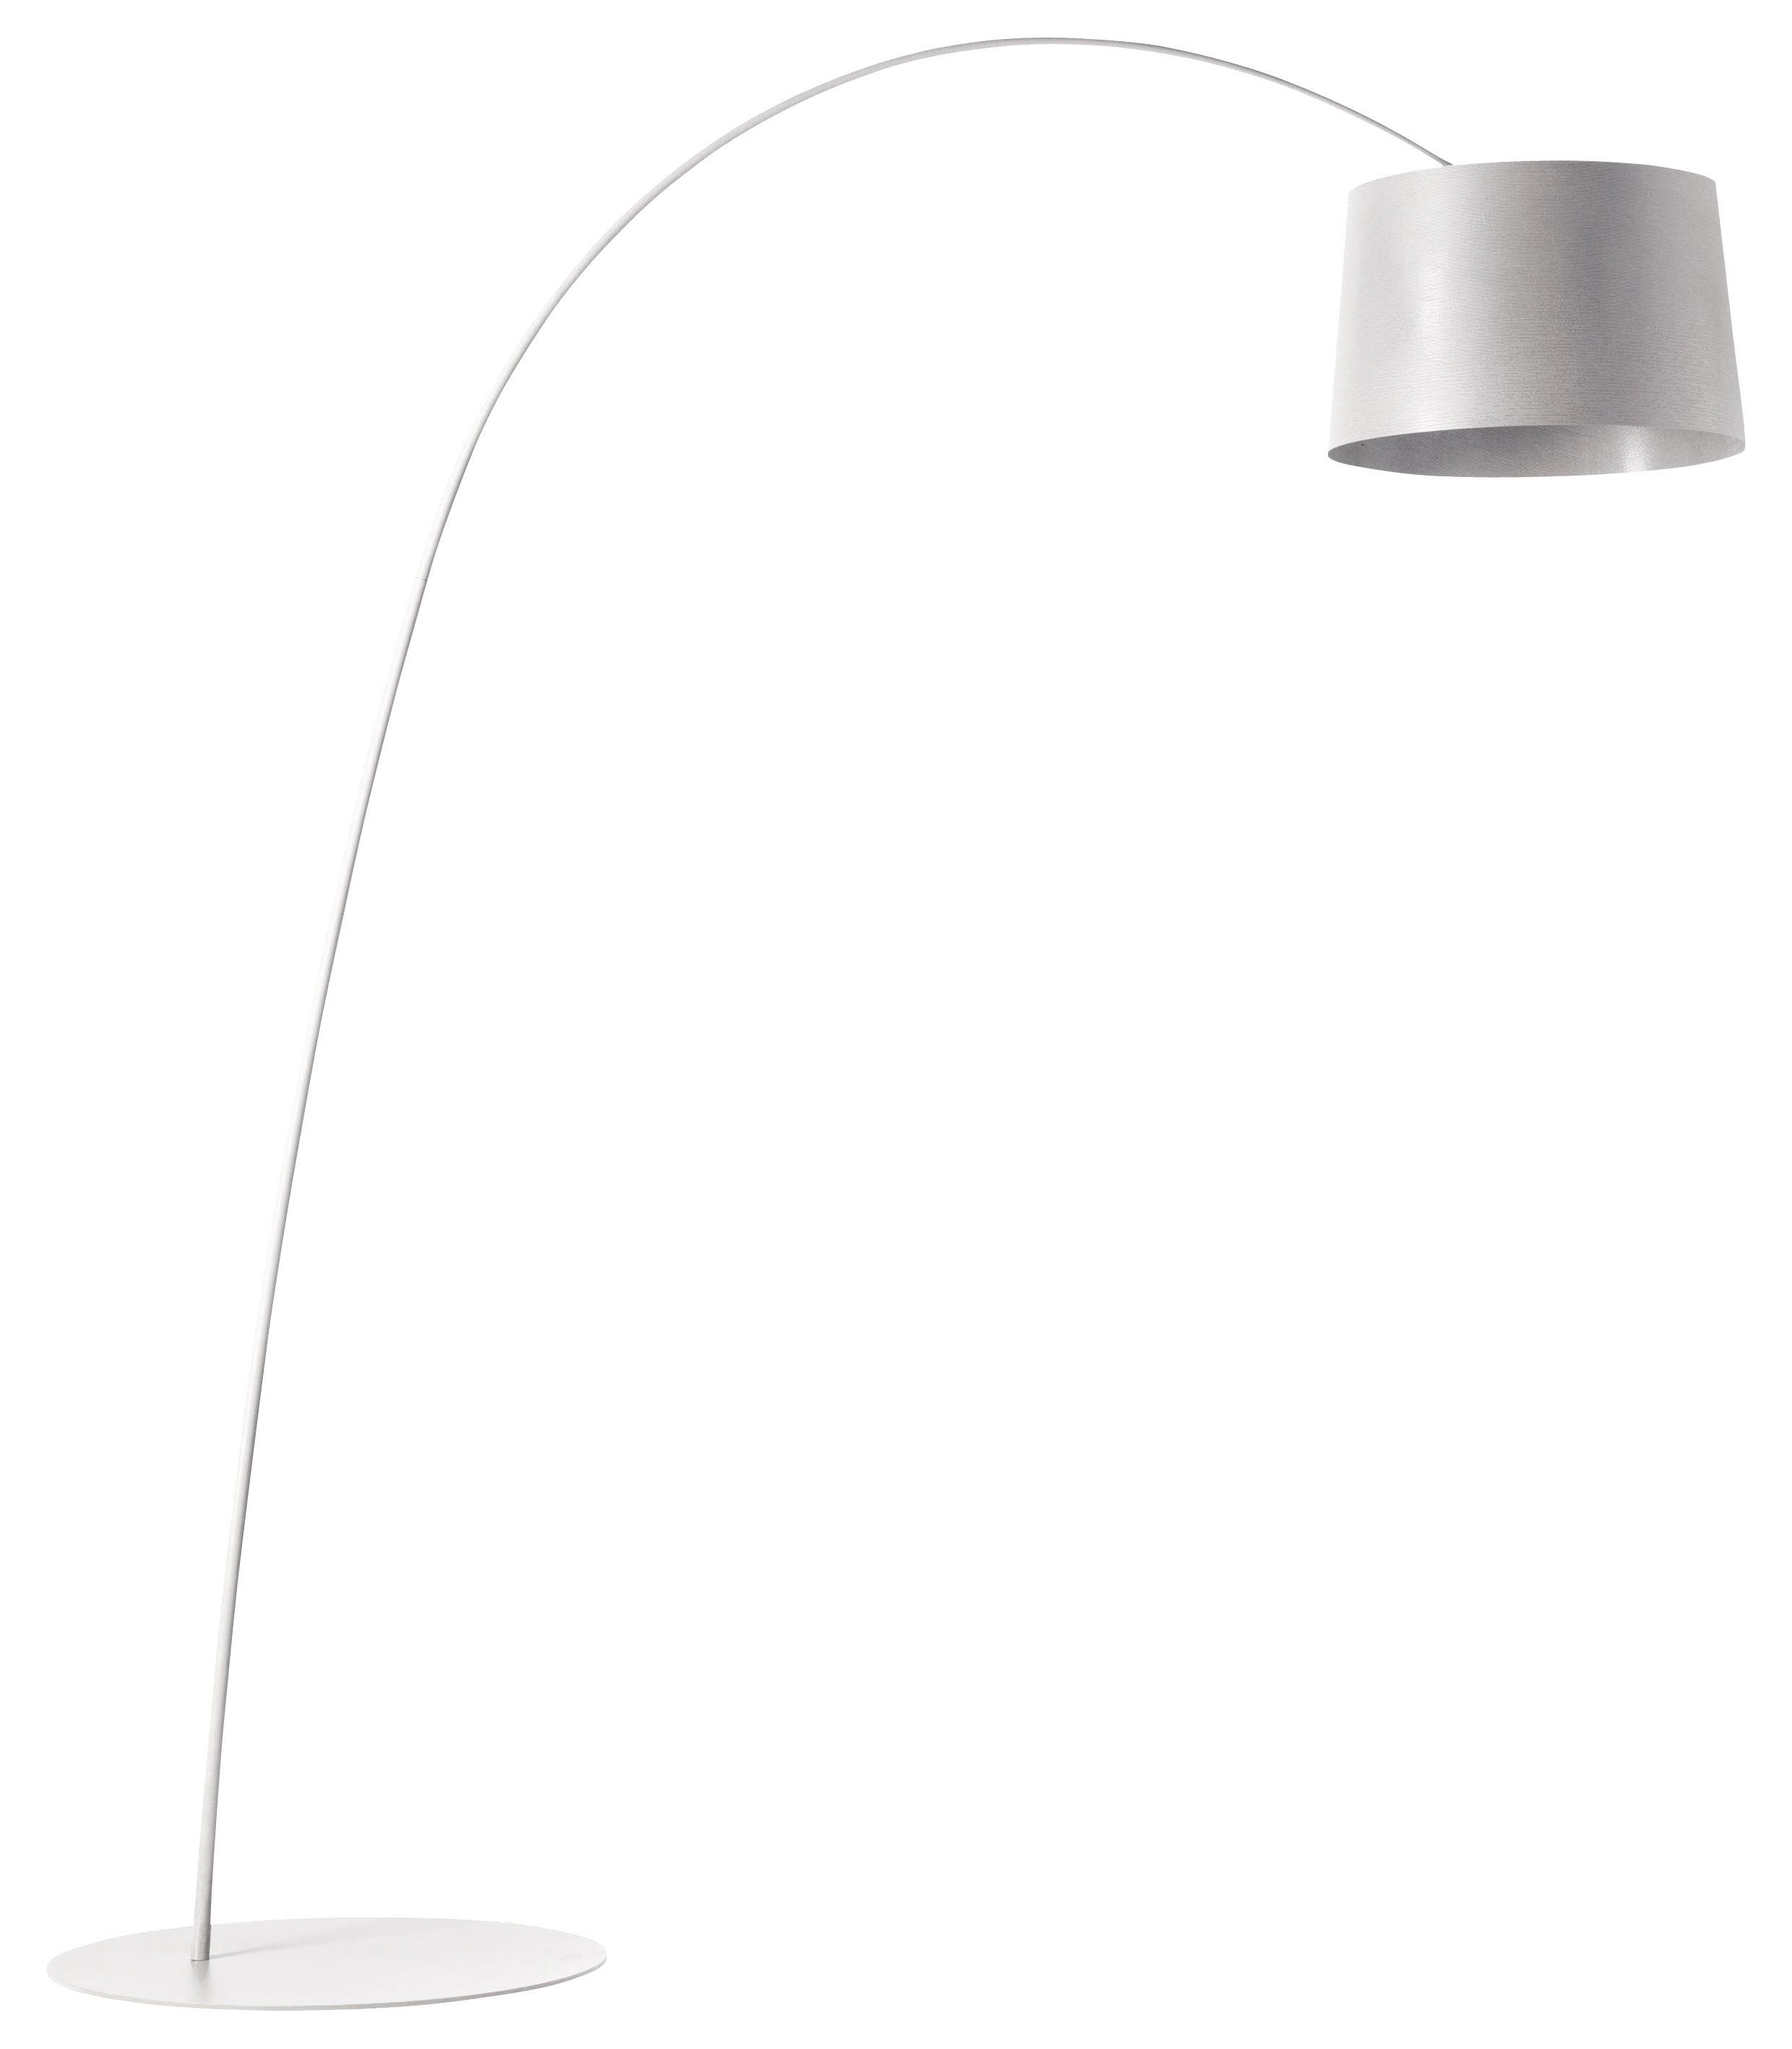 Lighting - Floor lamps - Twiggy Floor lamp by Foscarini - White - Composite material, Fibreglass